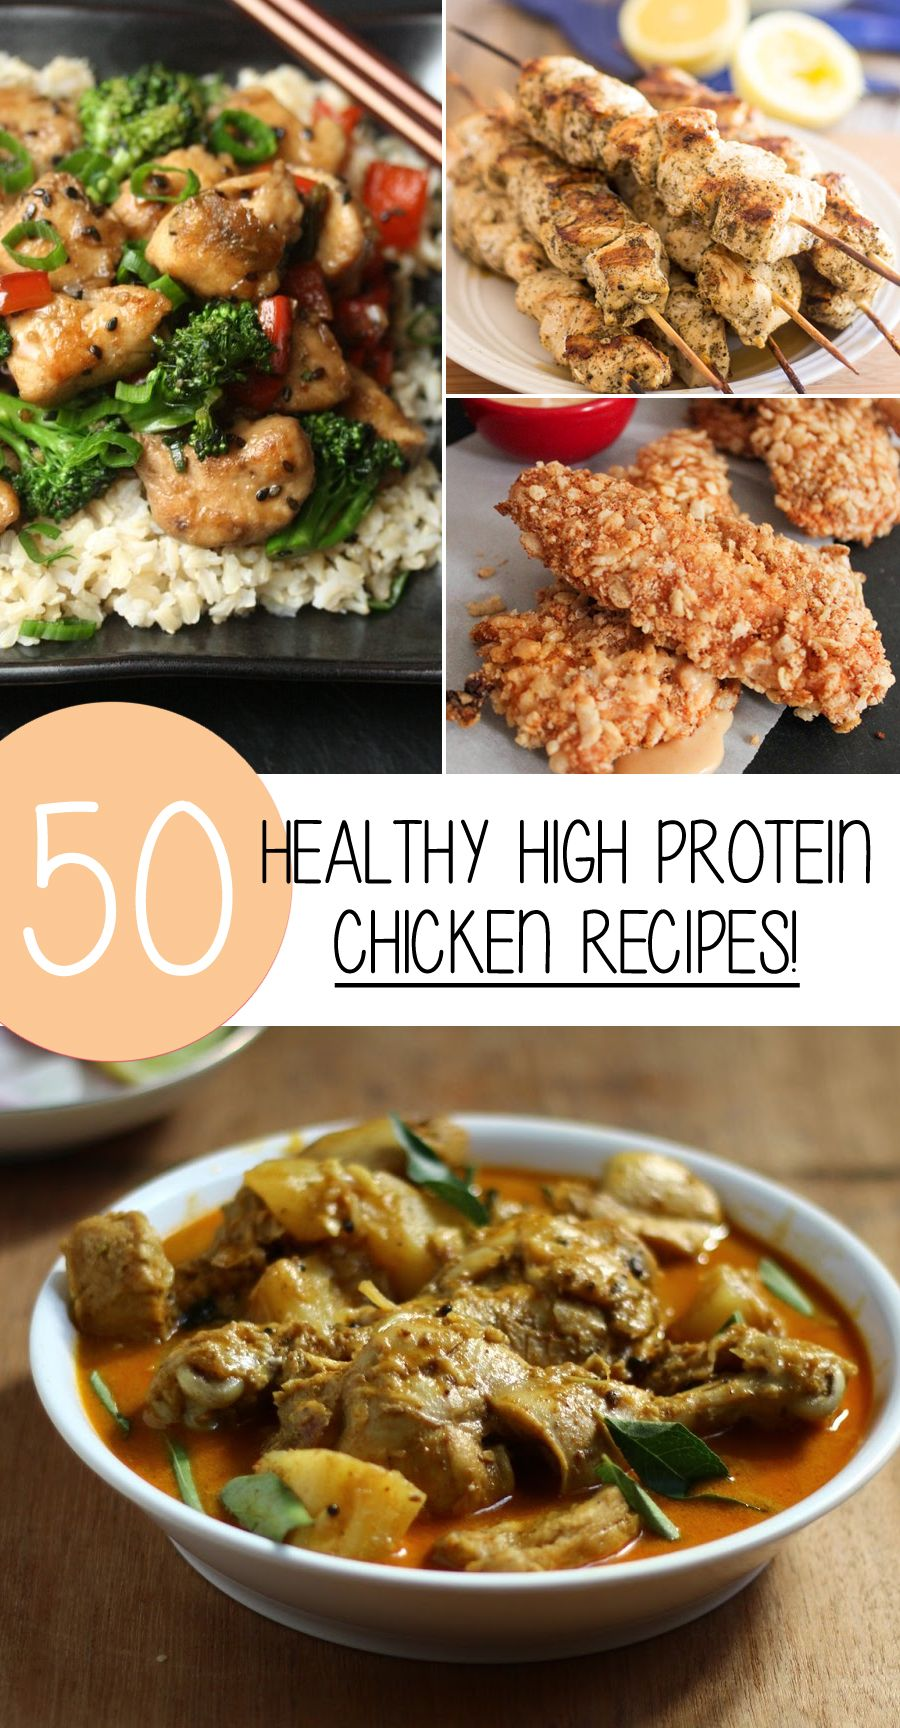 Italian Foods Near Me: The 25+ Best High Protein Chicken Recipes Ideas On